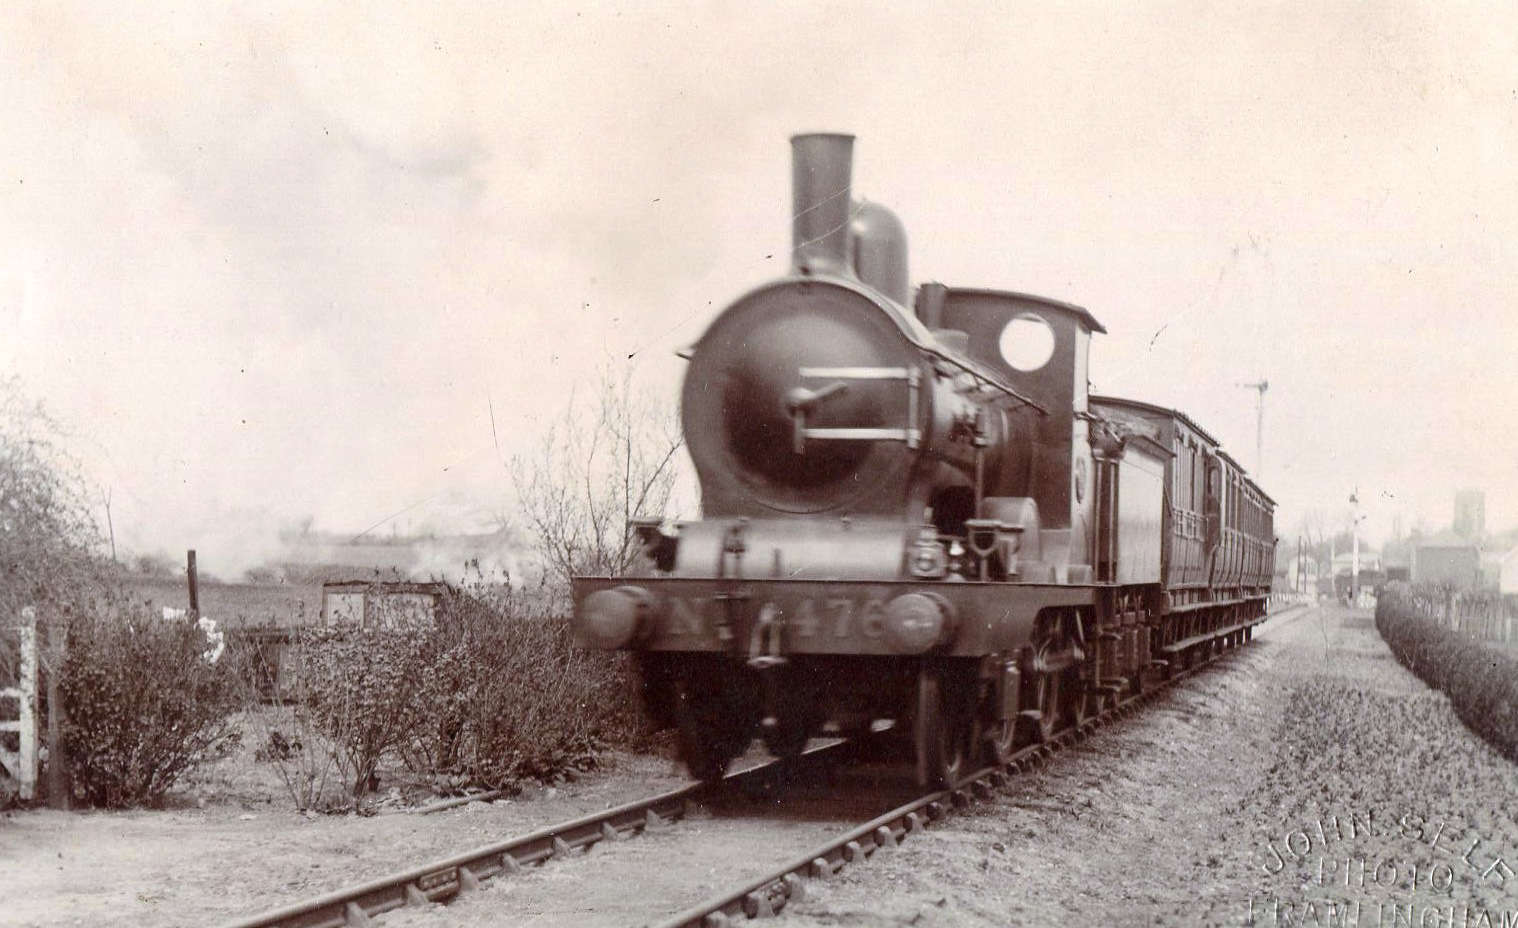 No 476 leaves the station, c.1905